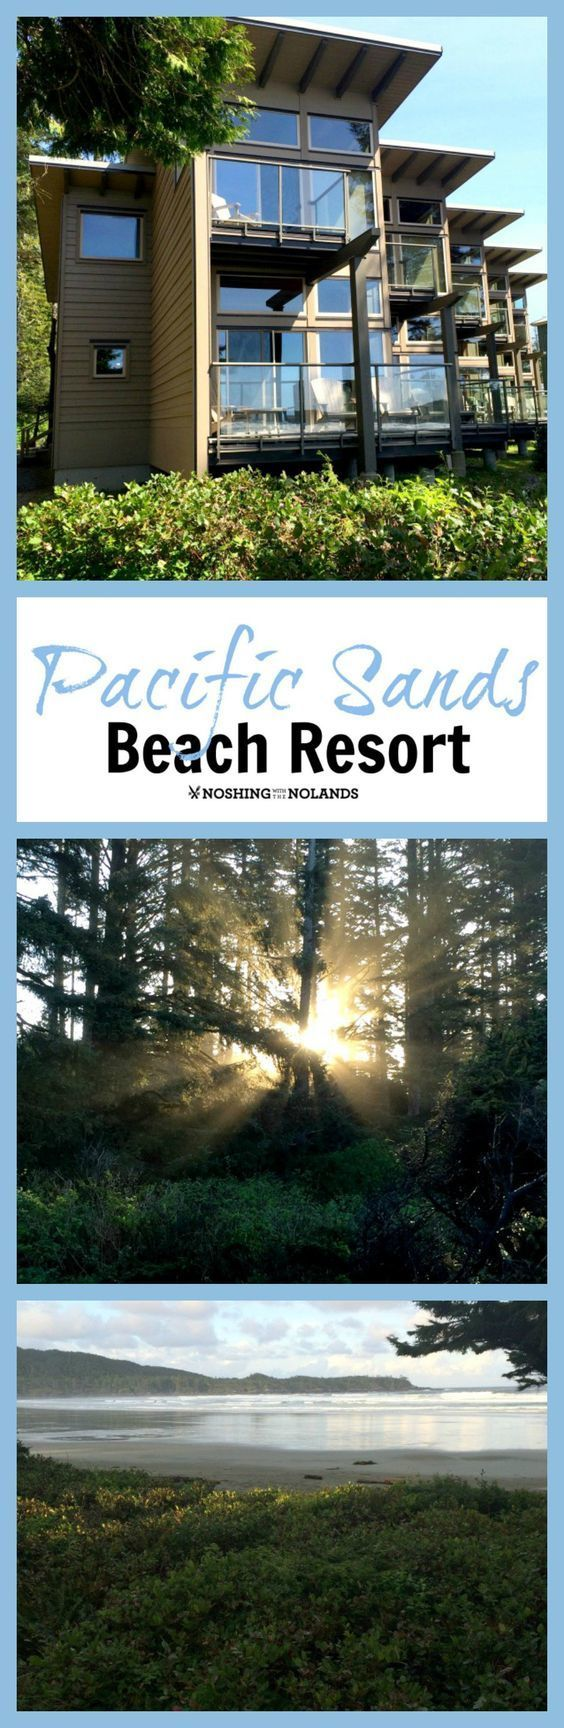 Pacific Sands Beach Resort in gorgeous Tofino, BC. Come and explore BC with whale watching, bear watching, beaches, surfing, dining and more!